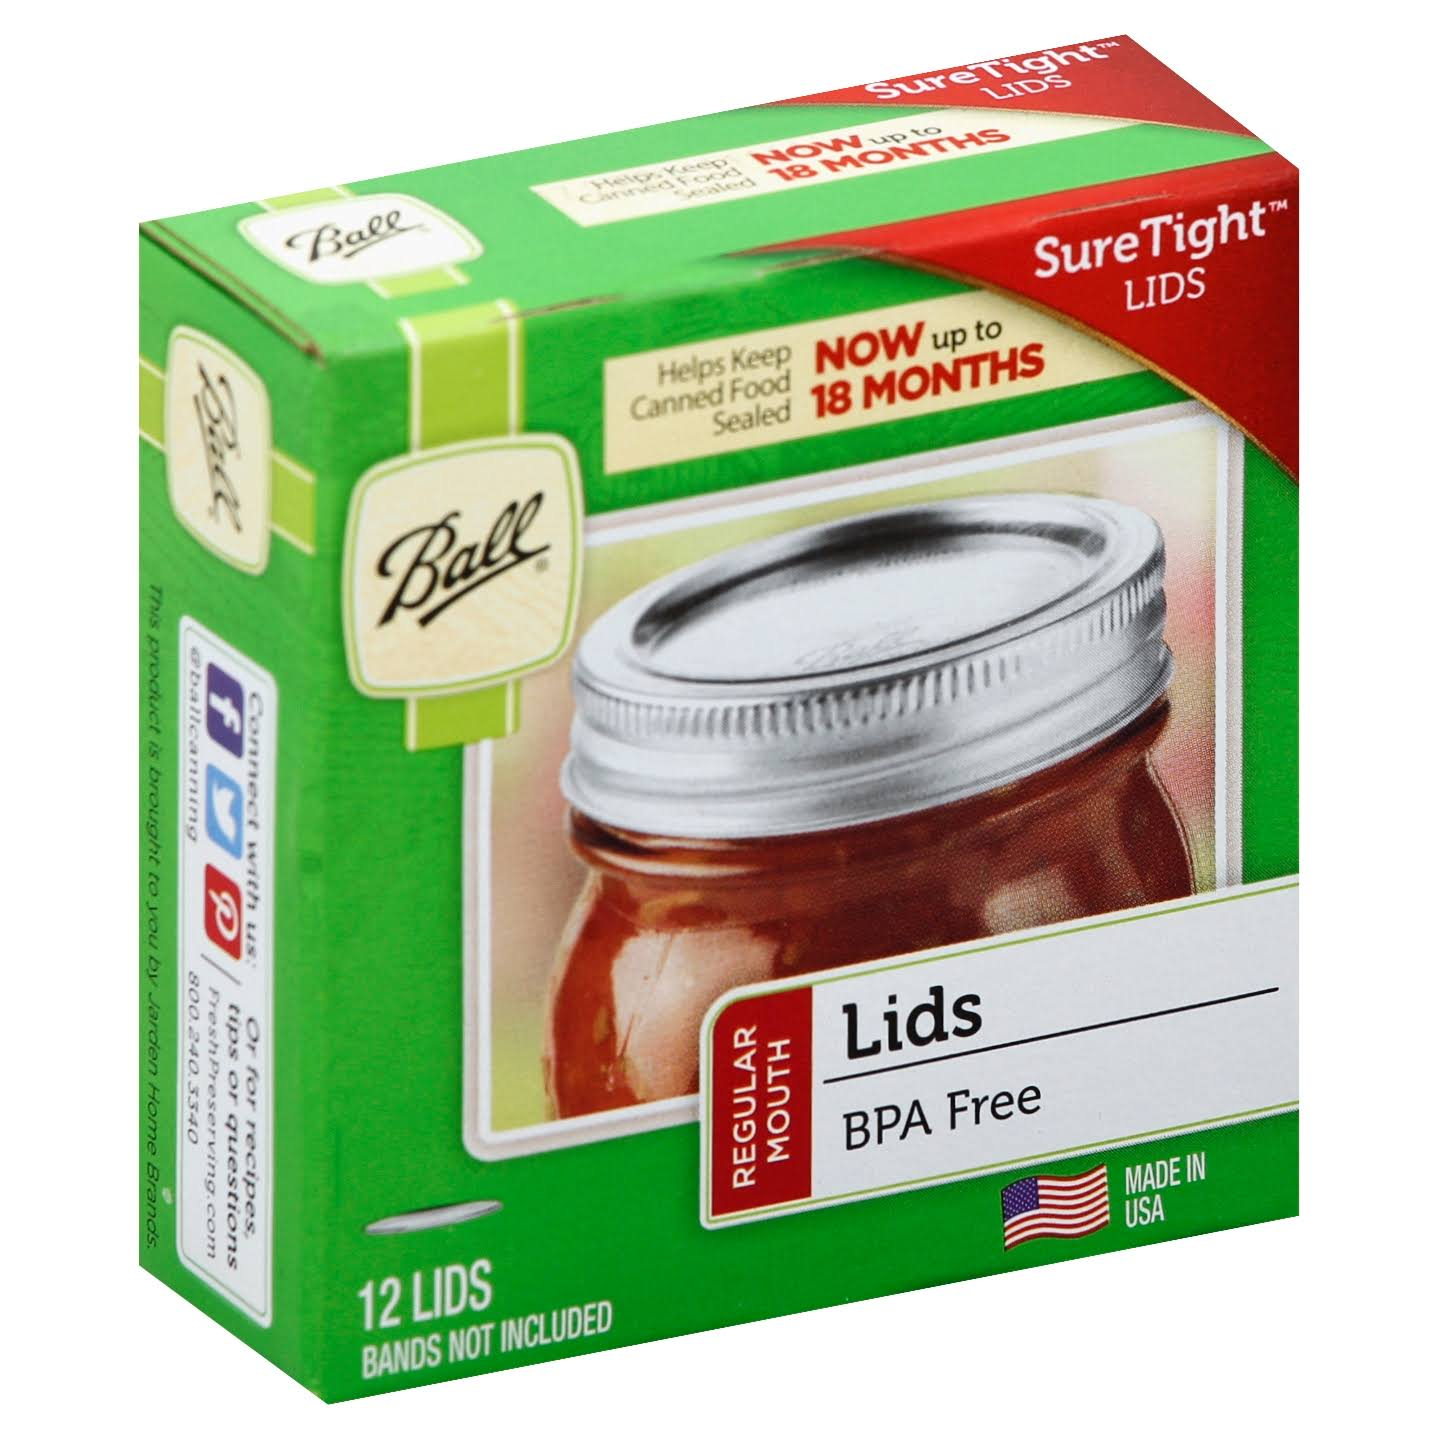 Ball Lids - Regular Mouth, 12 Lids